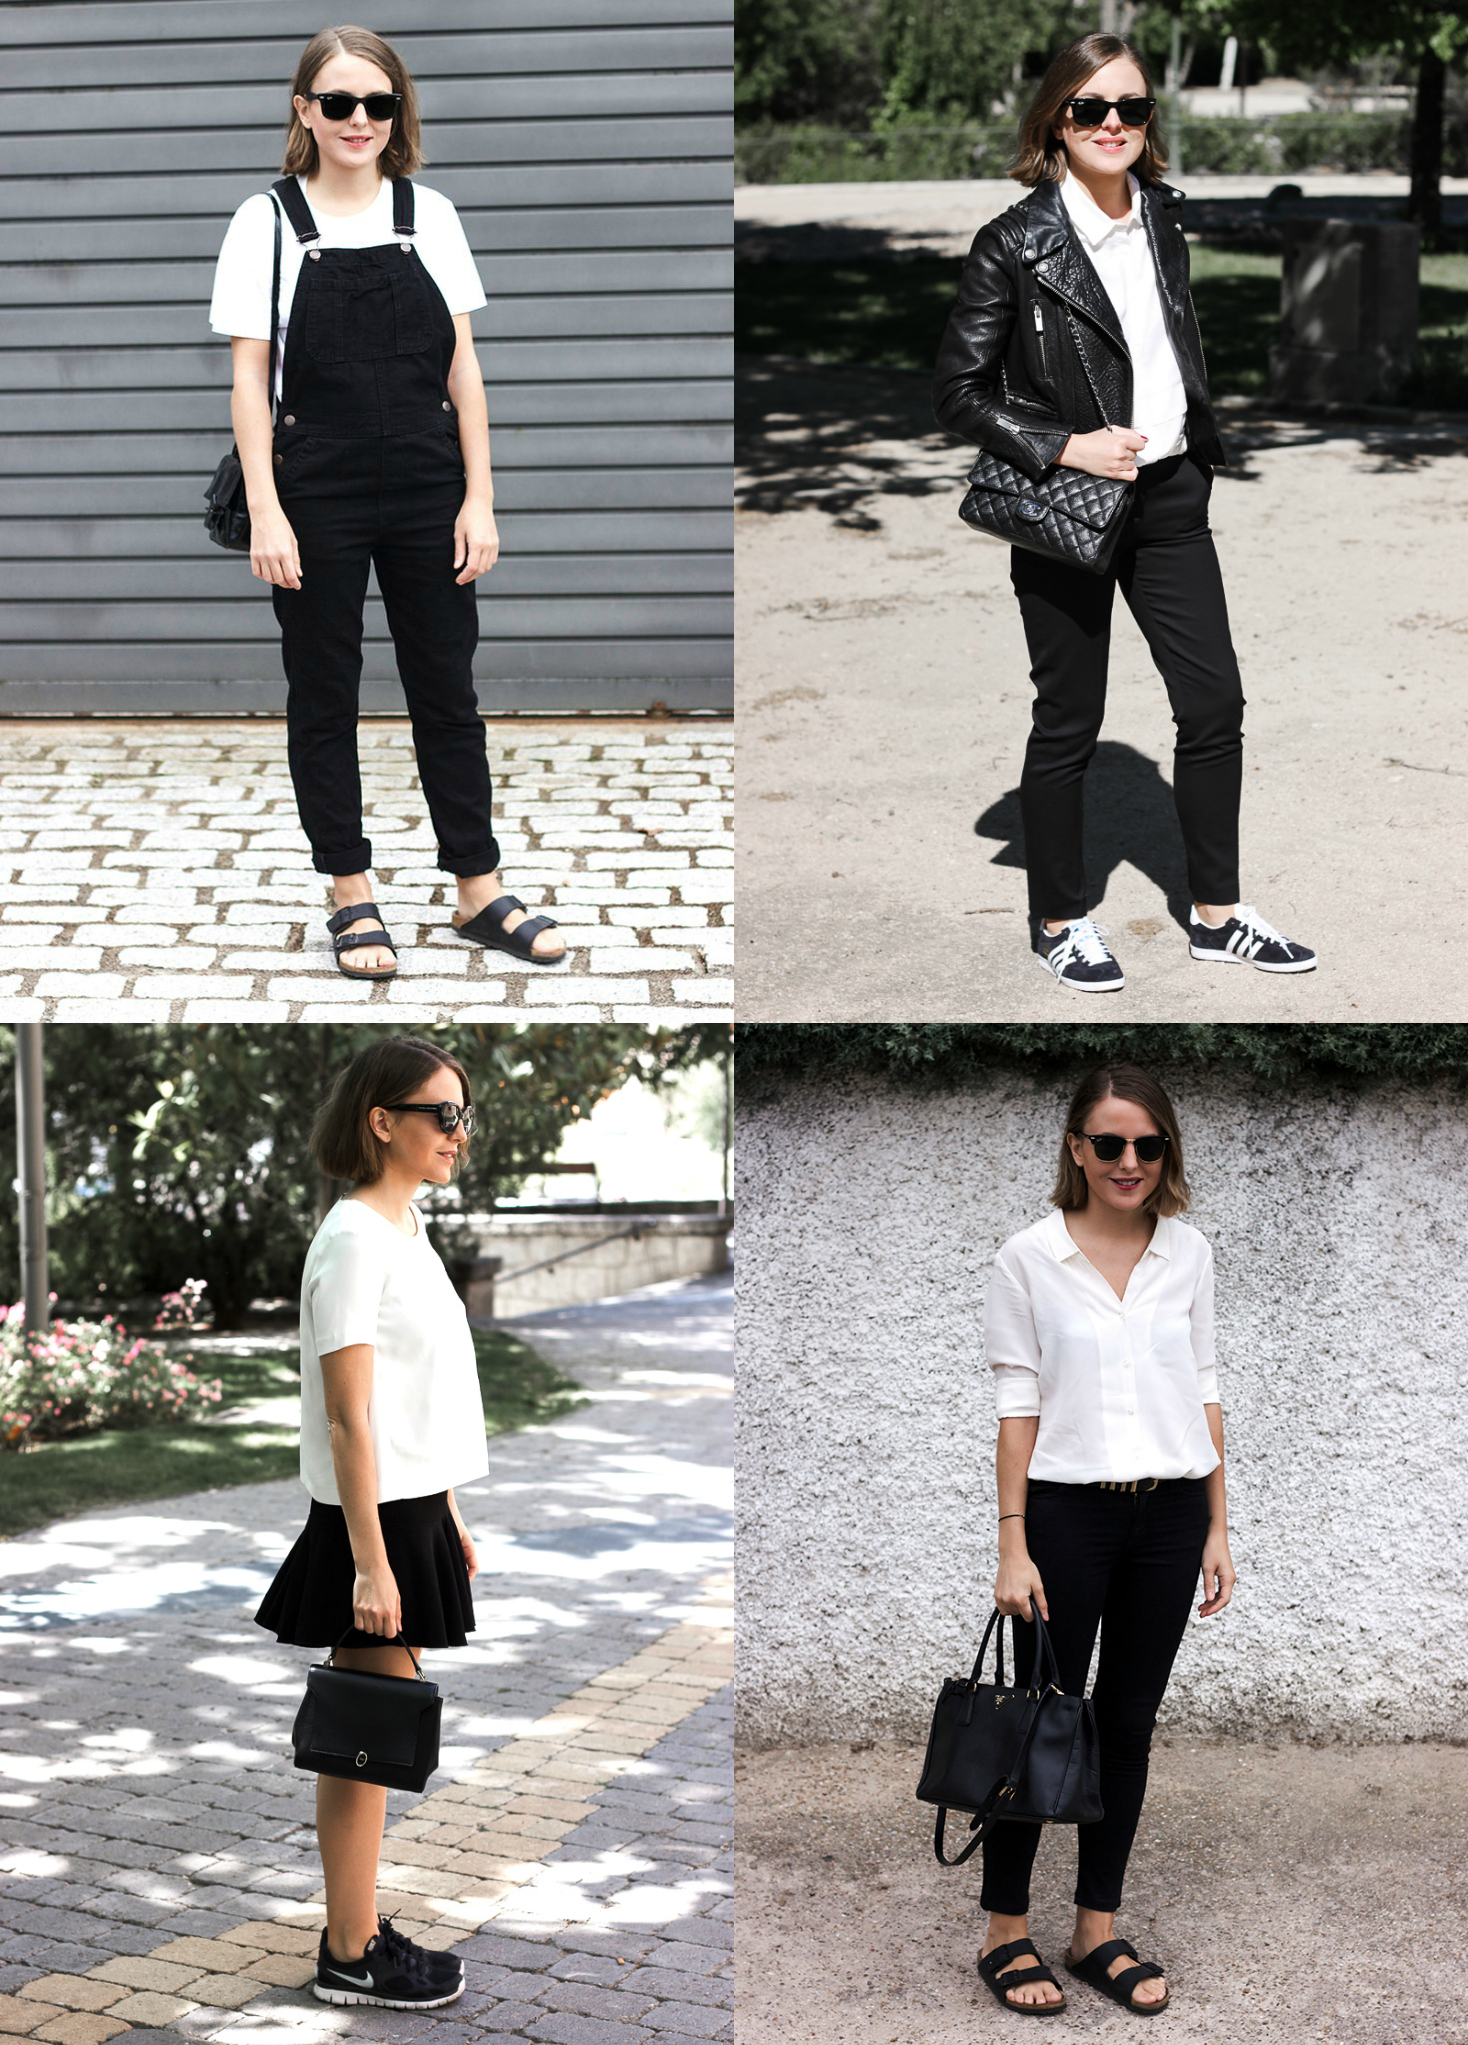 Trini | black and white outfits